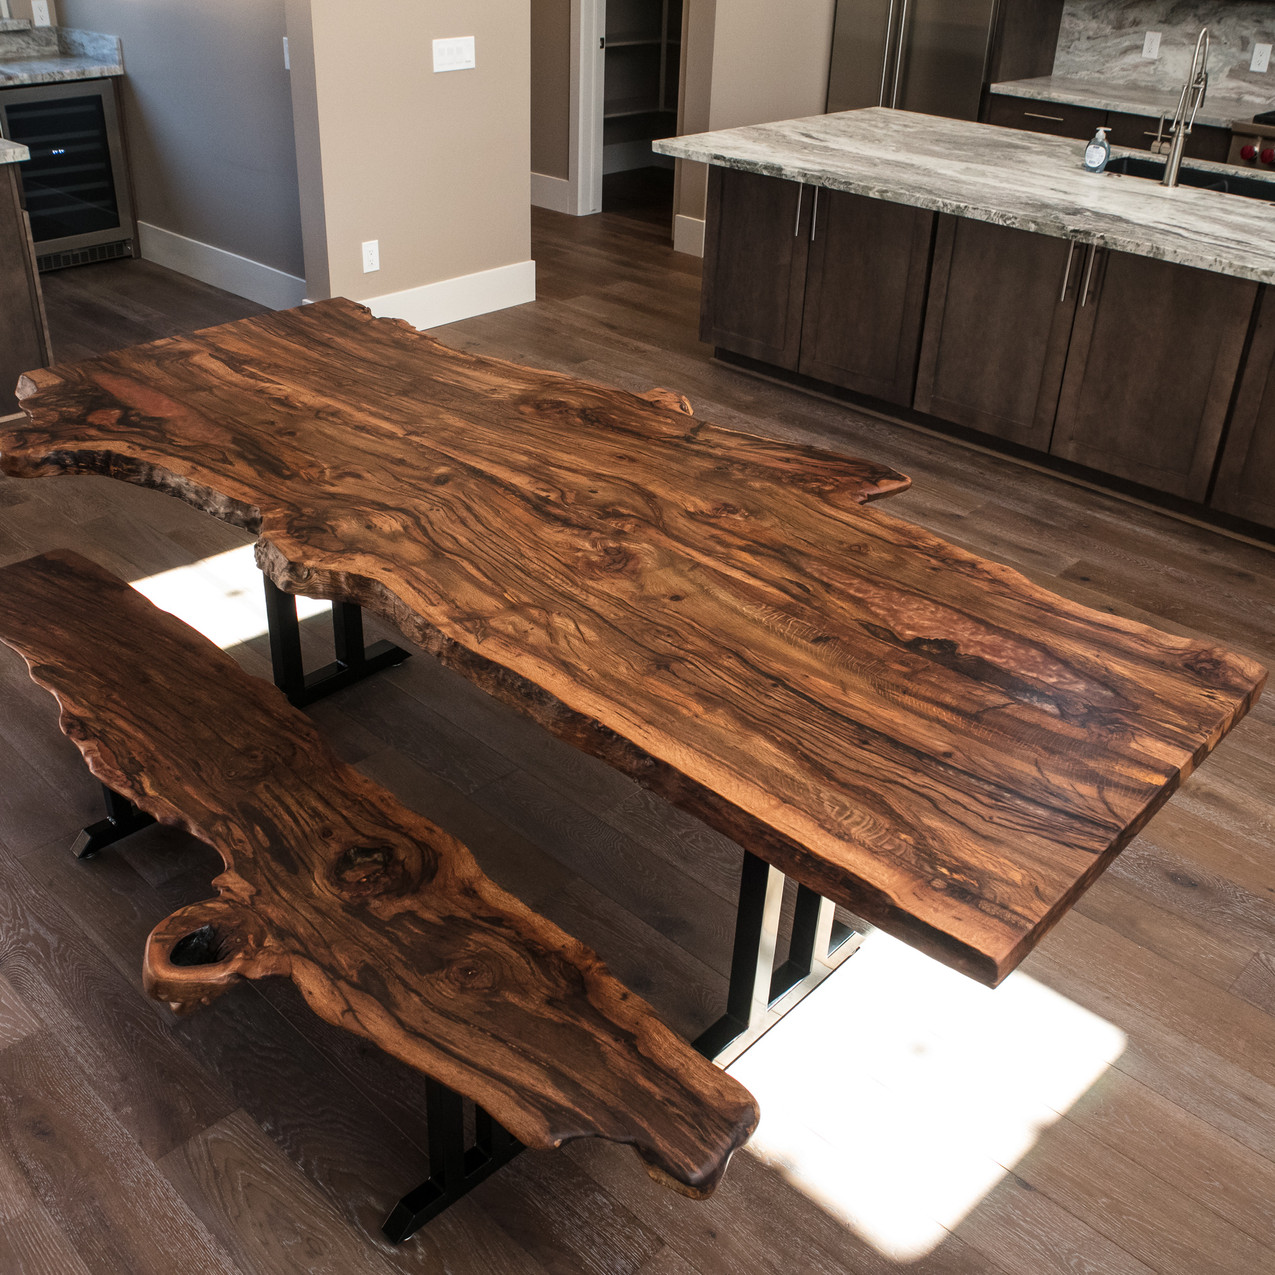 Rustic contemporary live edge dining table made from AZ black cherry slabs reclaimed from Cottonwood area that now reside in our customer's Sedona ranch.